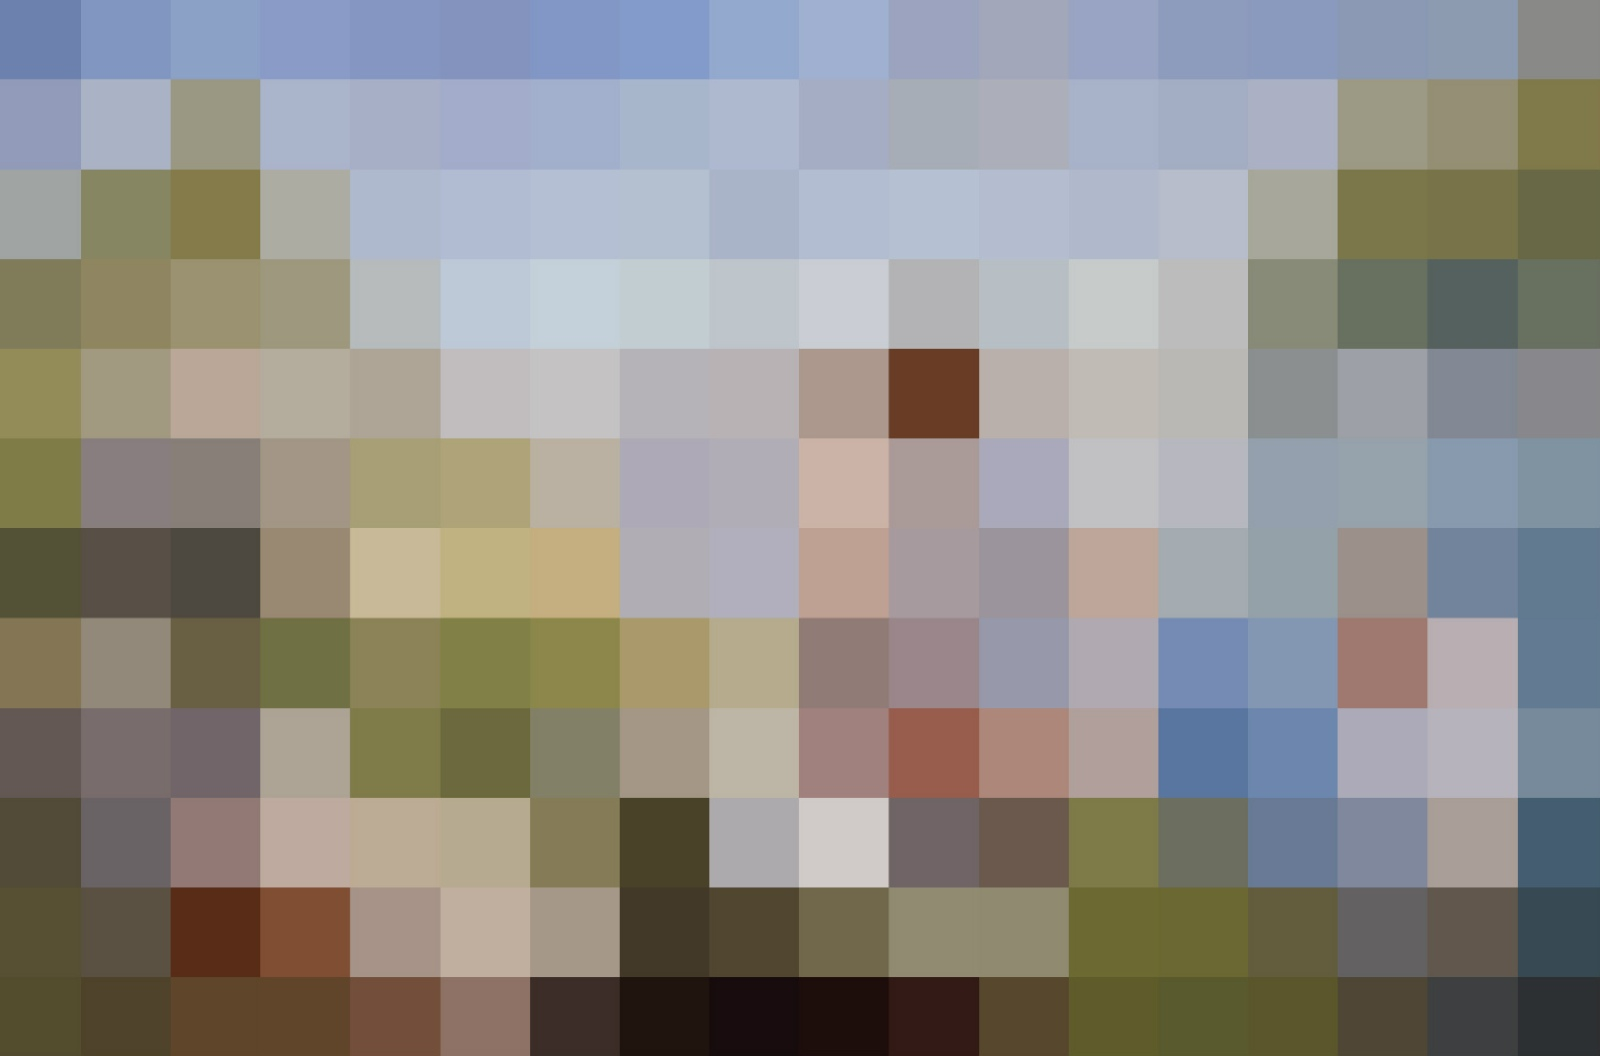 Rob and Nick Carter - RN910, 1884, Pixelated Painting, 2013 · © Copyright 2019